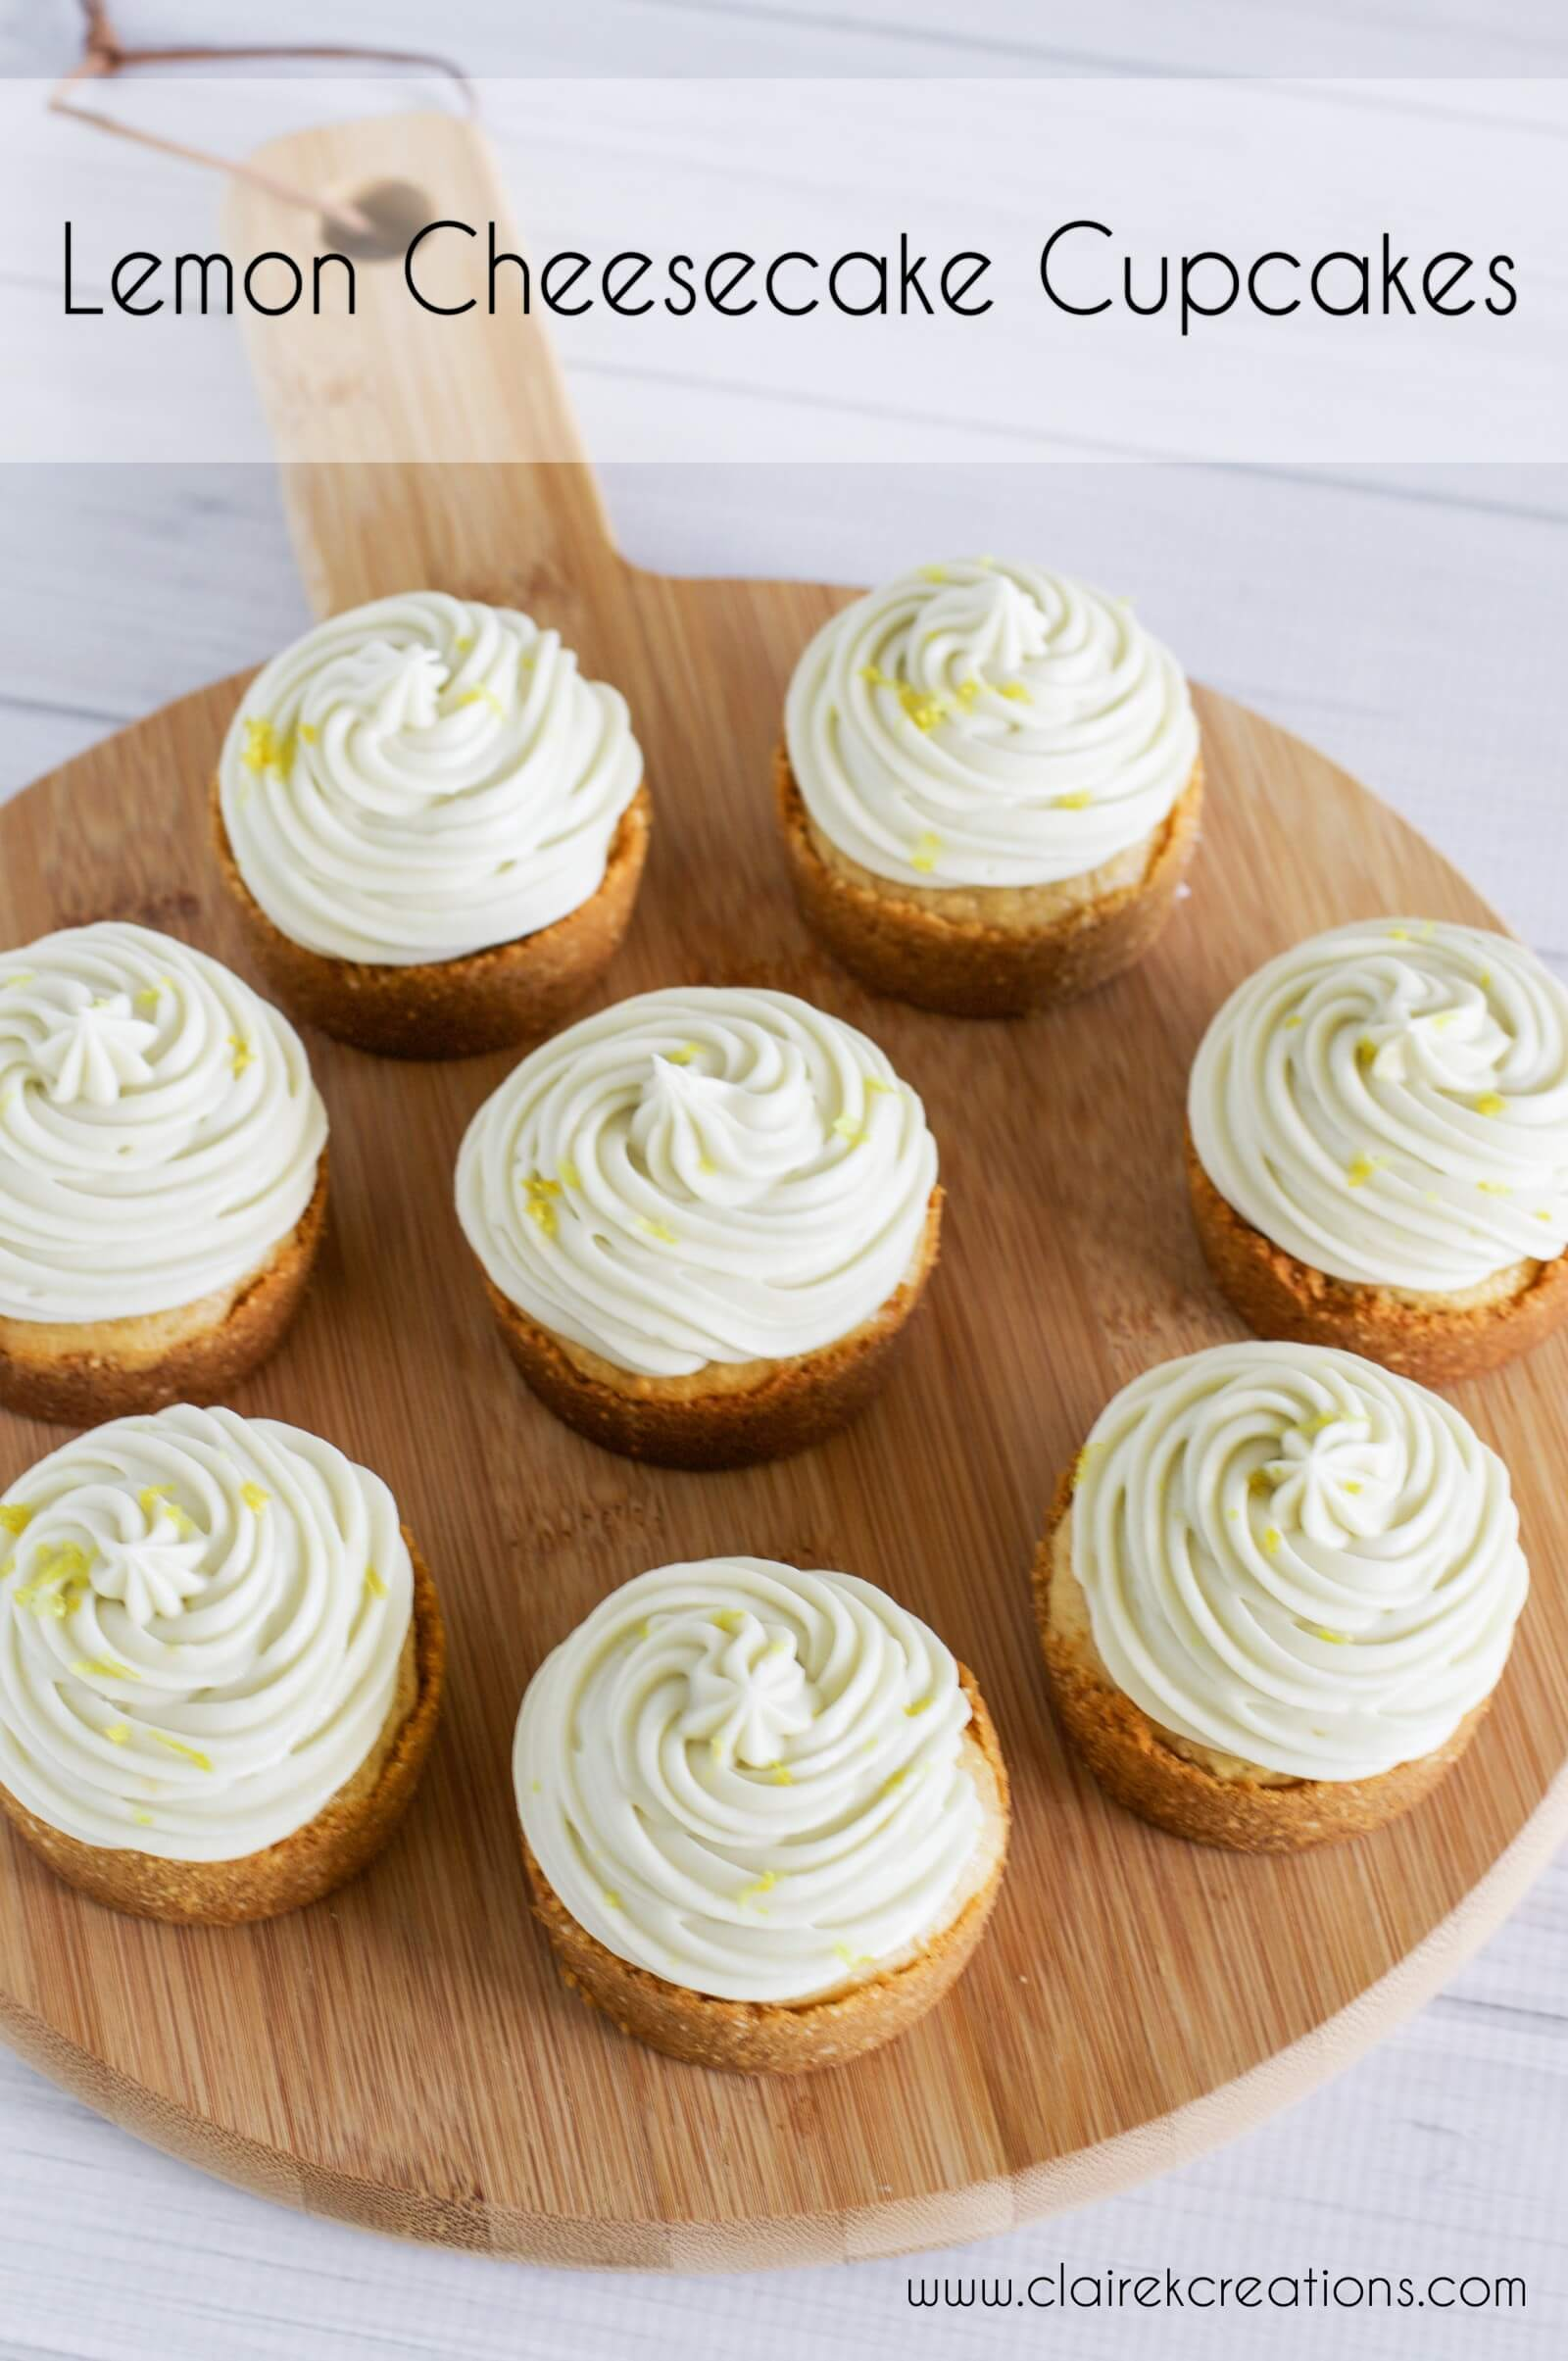 Lemon cheesecake cupcakes with lemon curd